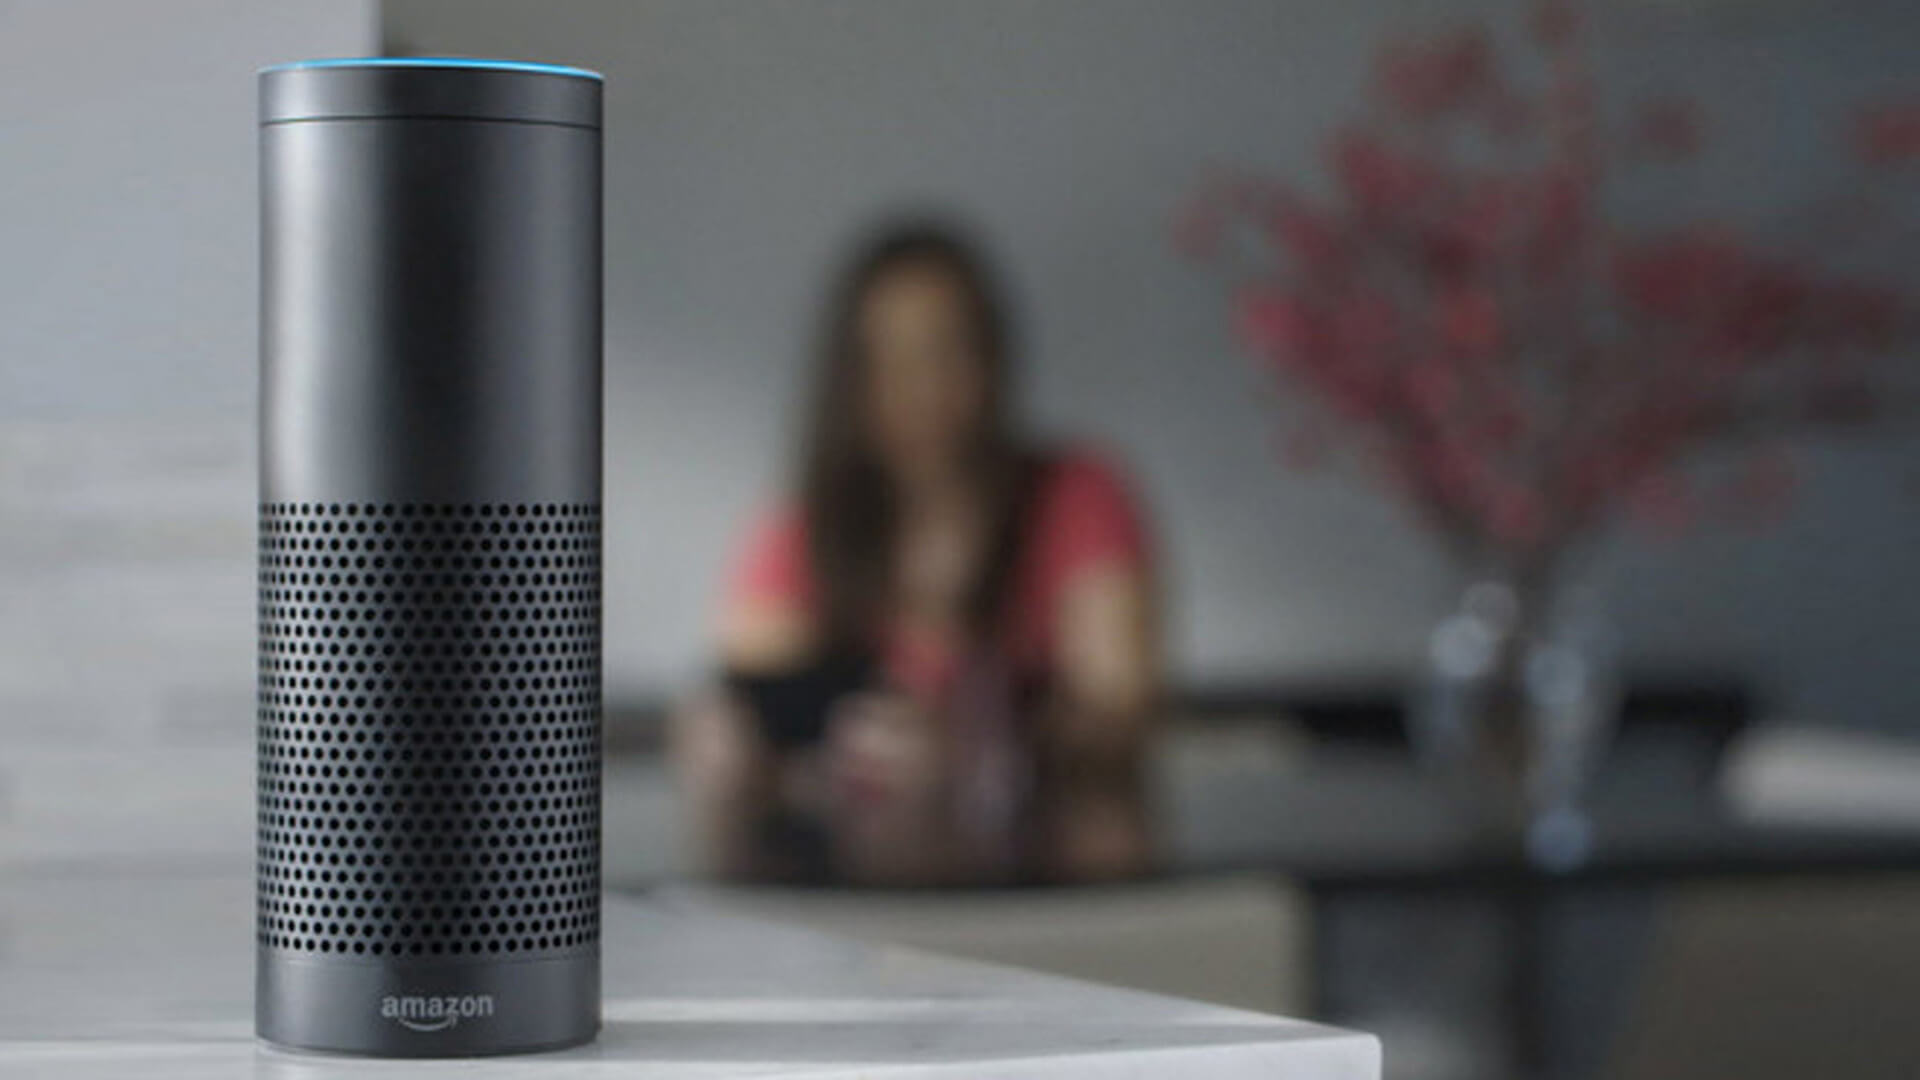 Image Credit: Amazon Echo